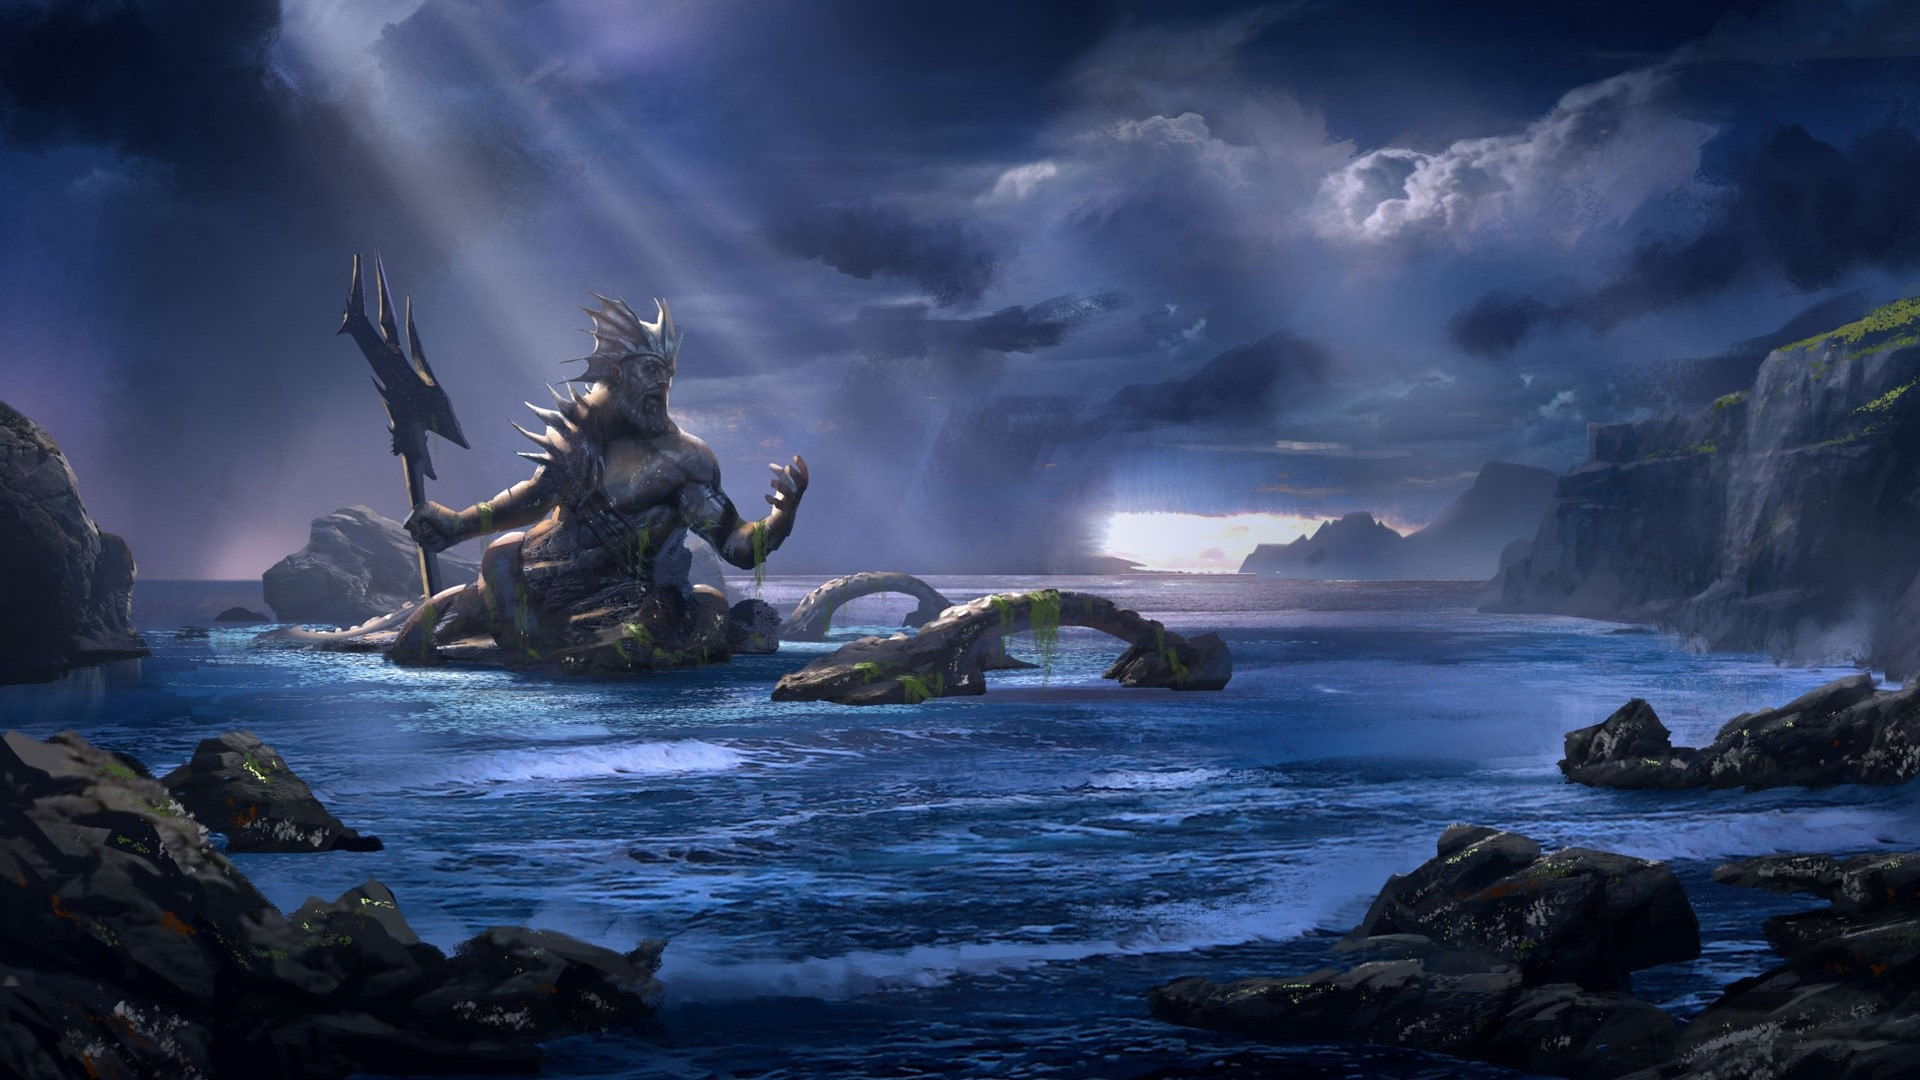 Wallpaper Poseidon en God of War Ascension Images